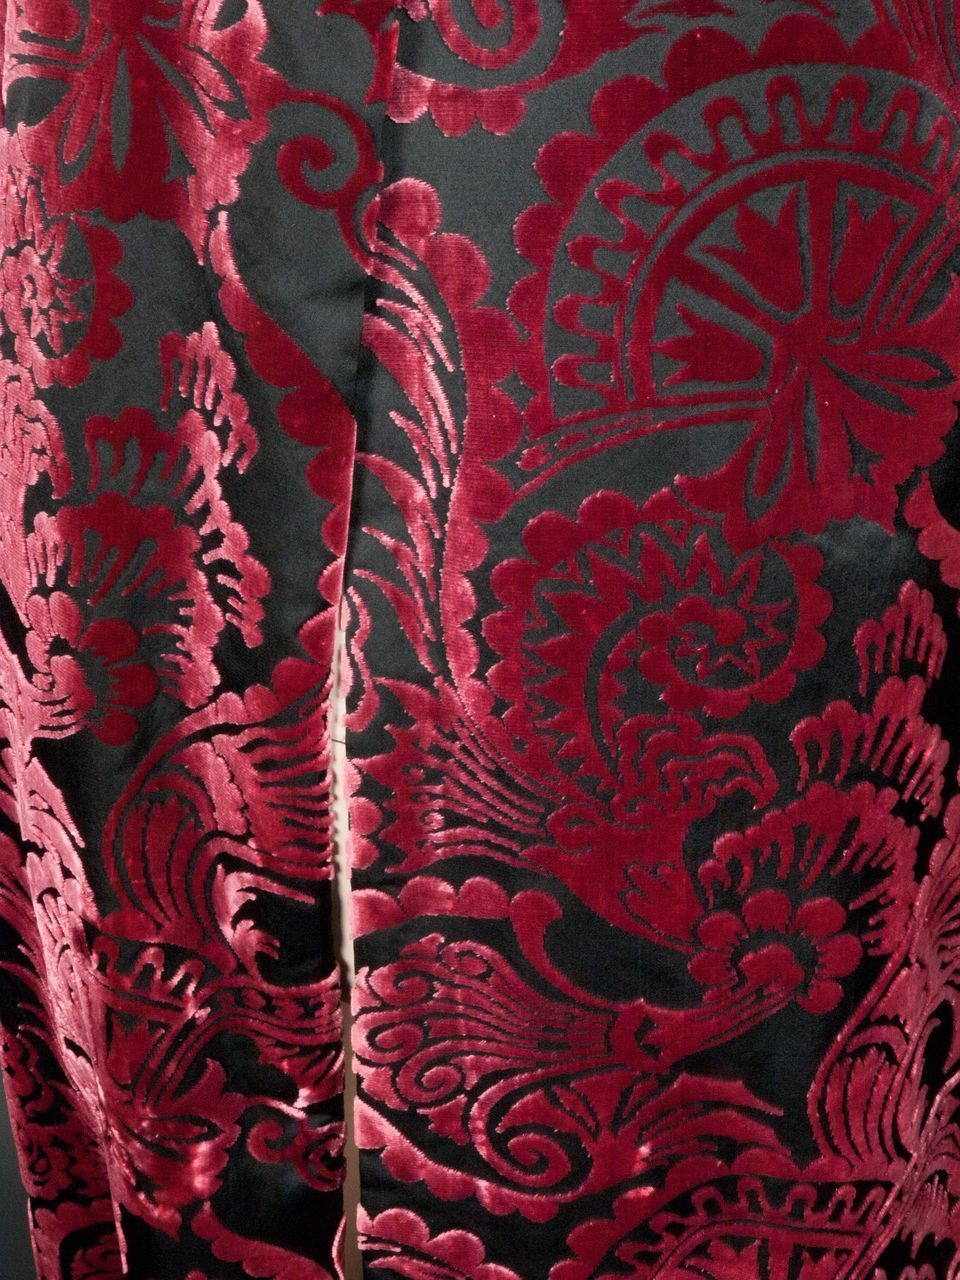 house of worth silk velvet devore coat haute couture no  2250 from giddy on ruby lane